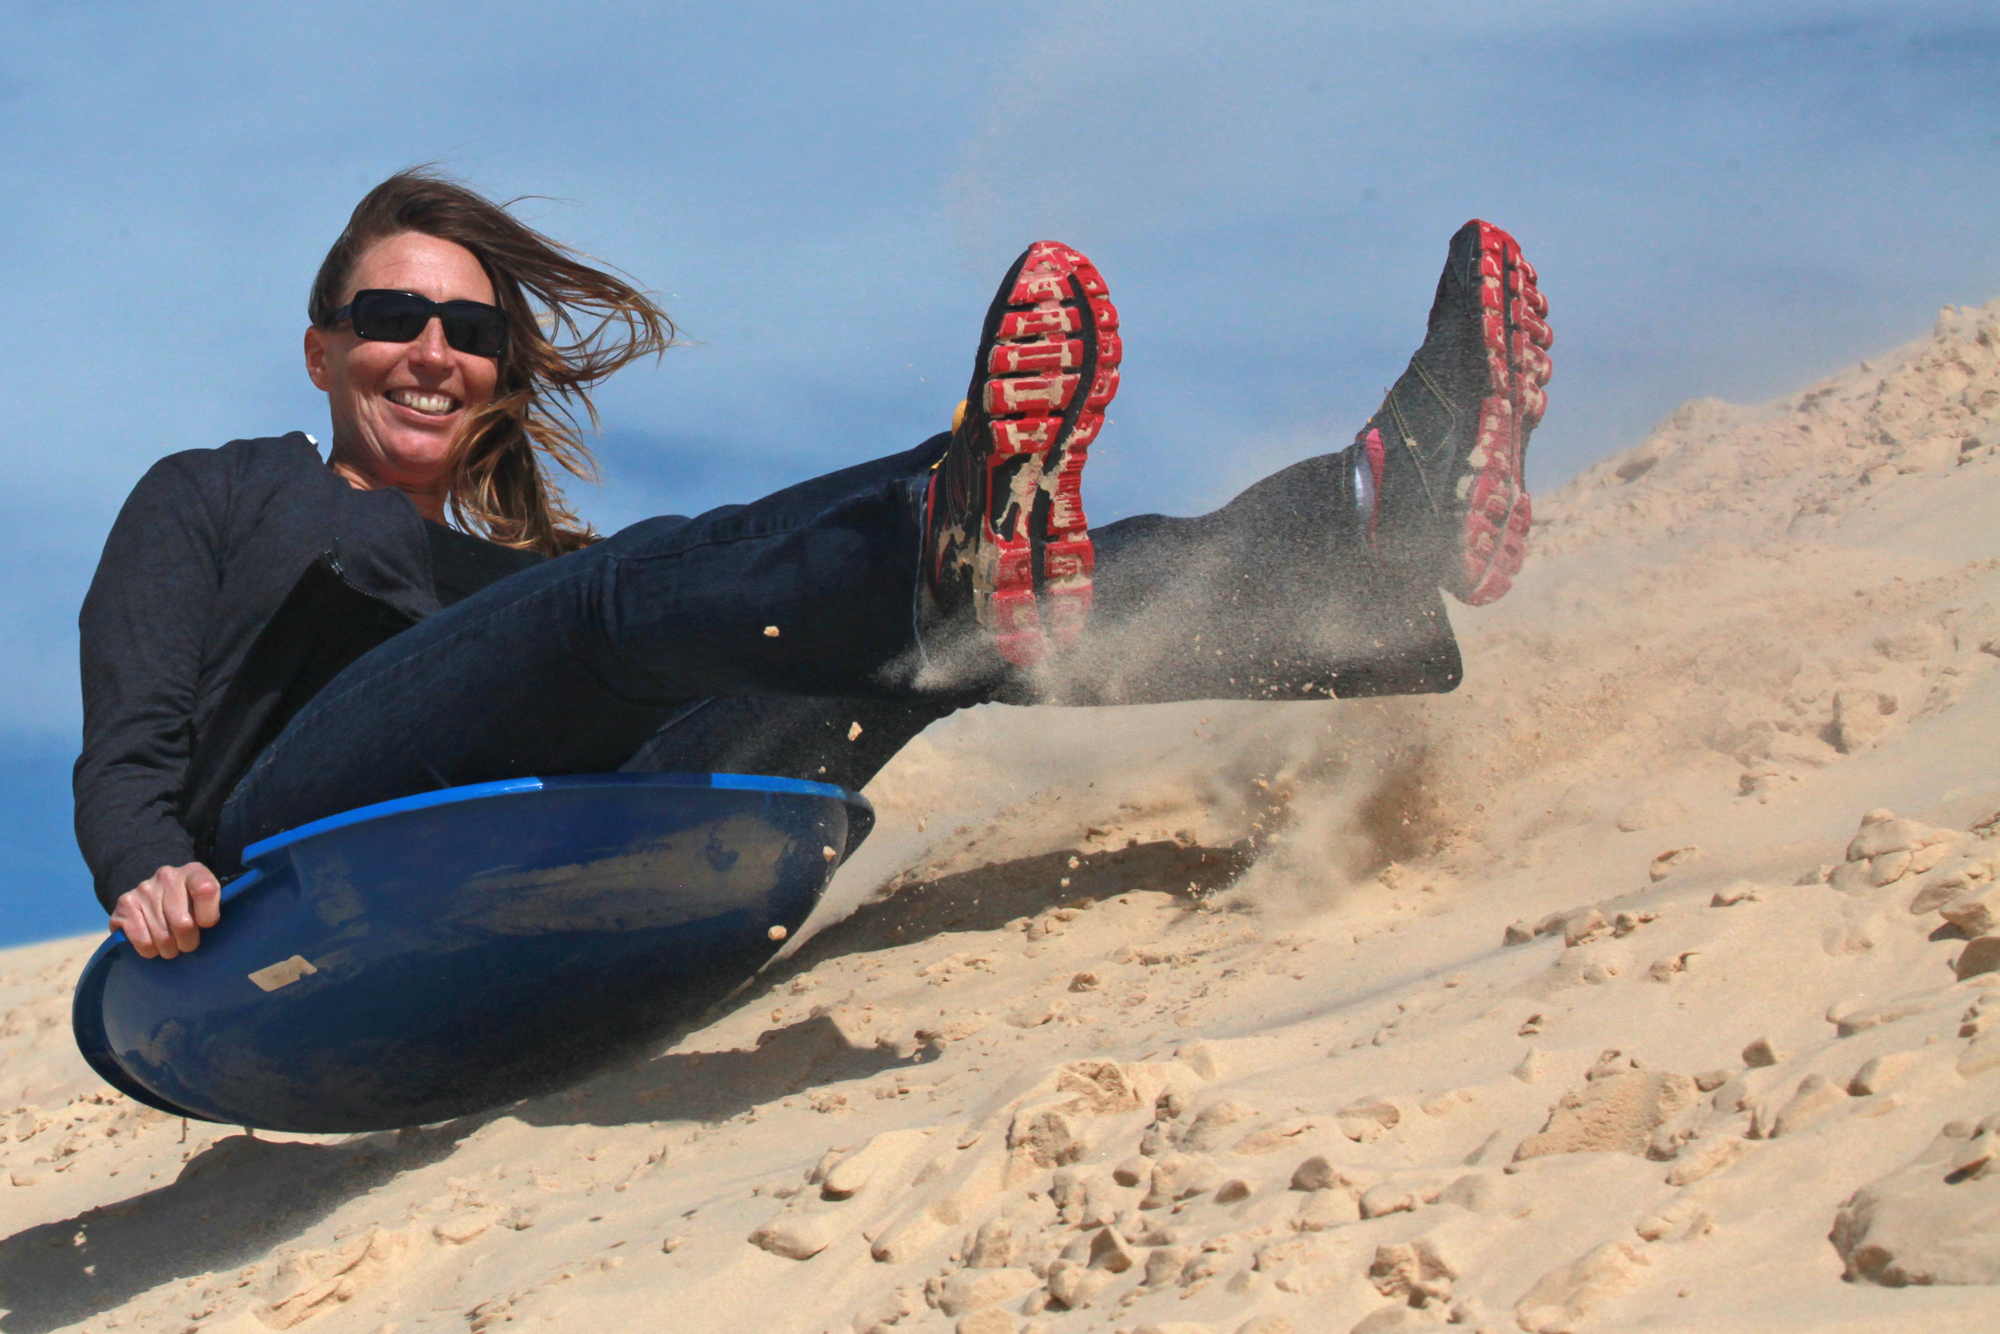 Giant Sand Dunes Of Monahans Attract Boy Scouts Campers